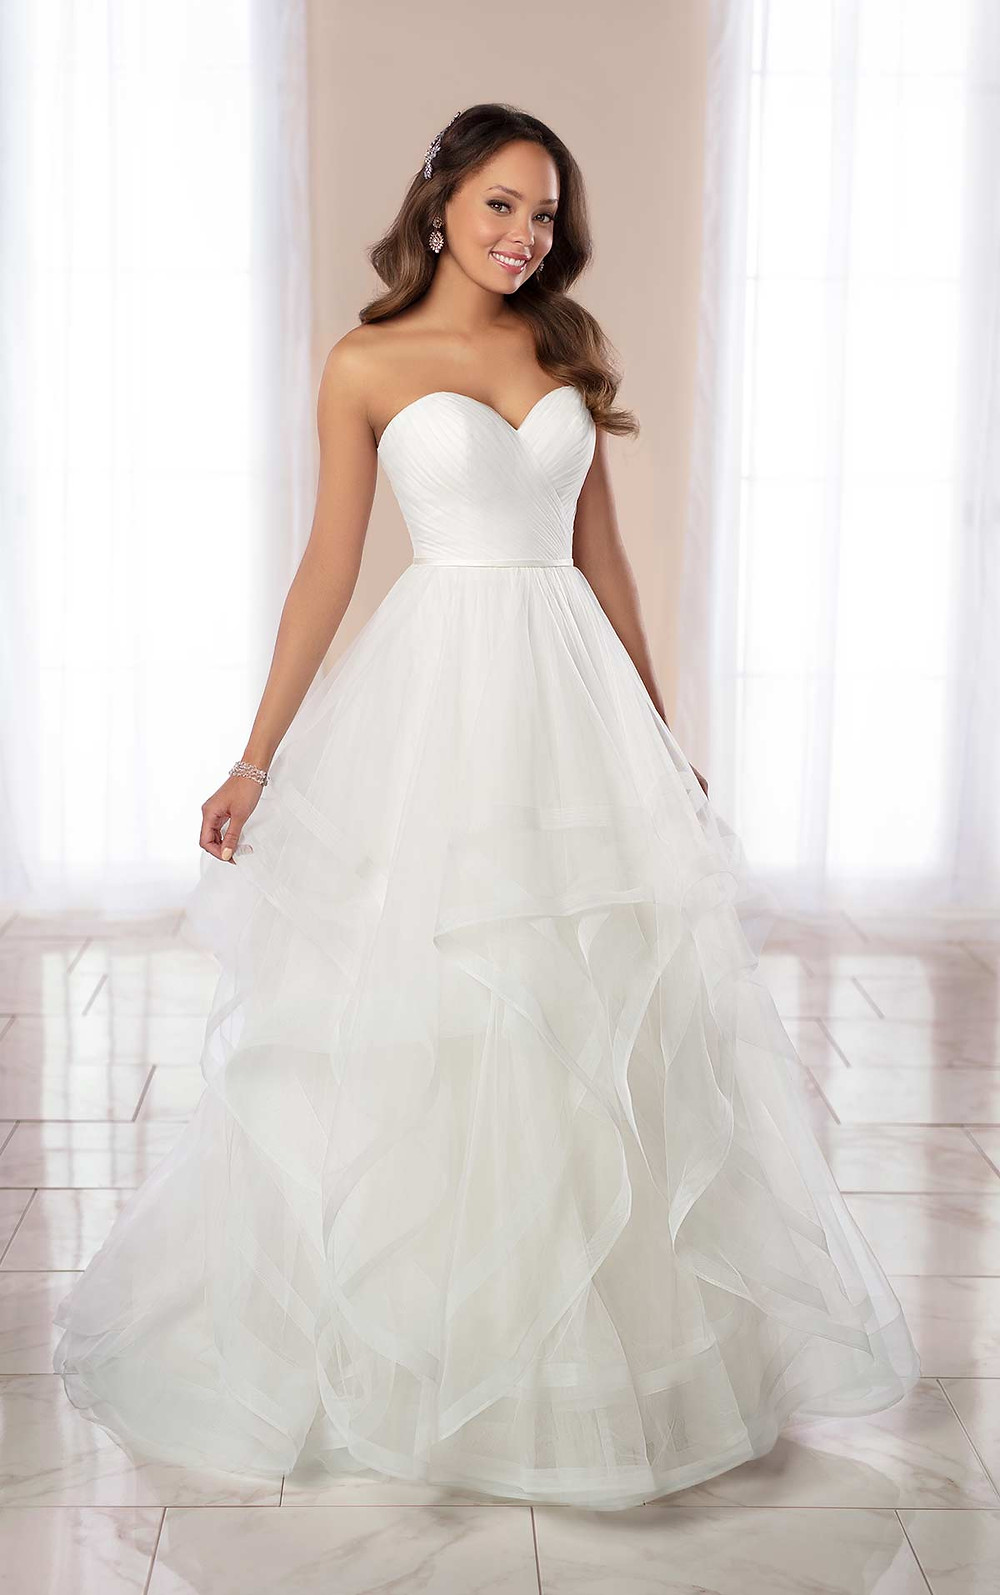 A Stella York 2020 strapless tulle ball gown wedding dress with a sweetheart neckline